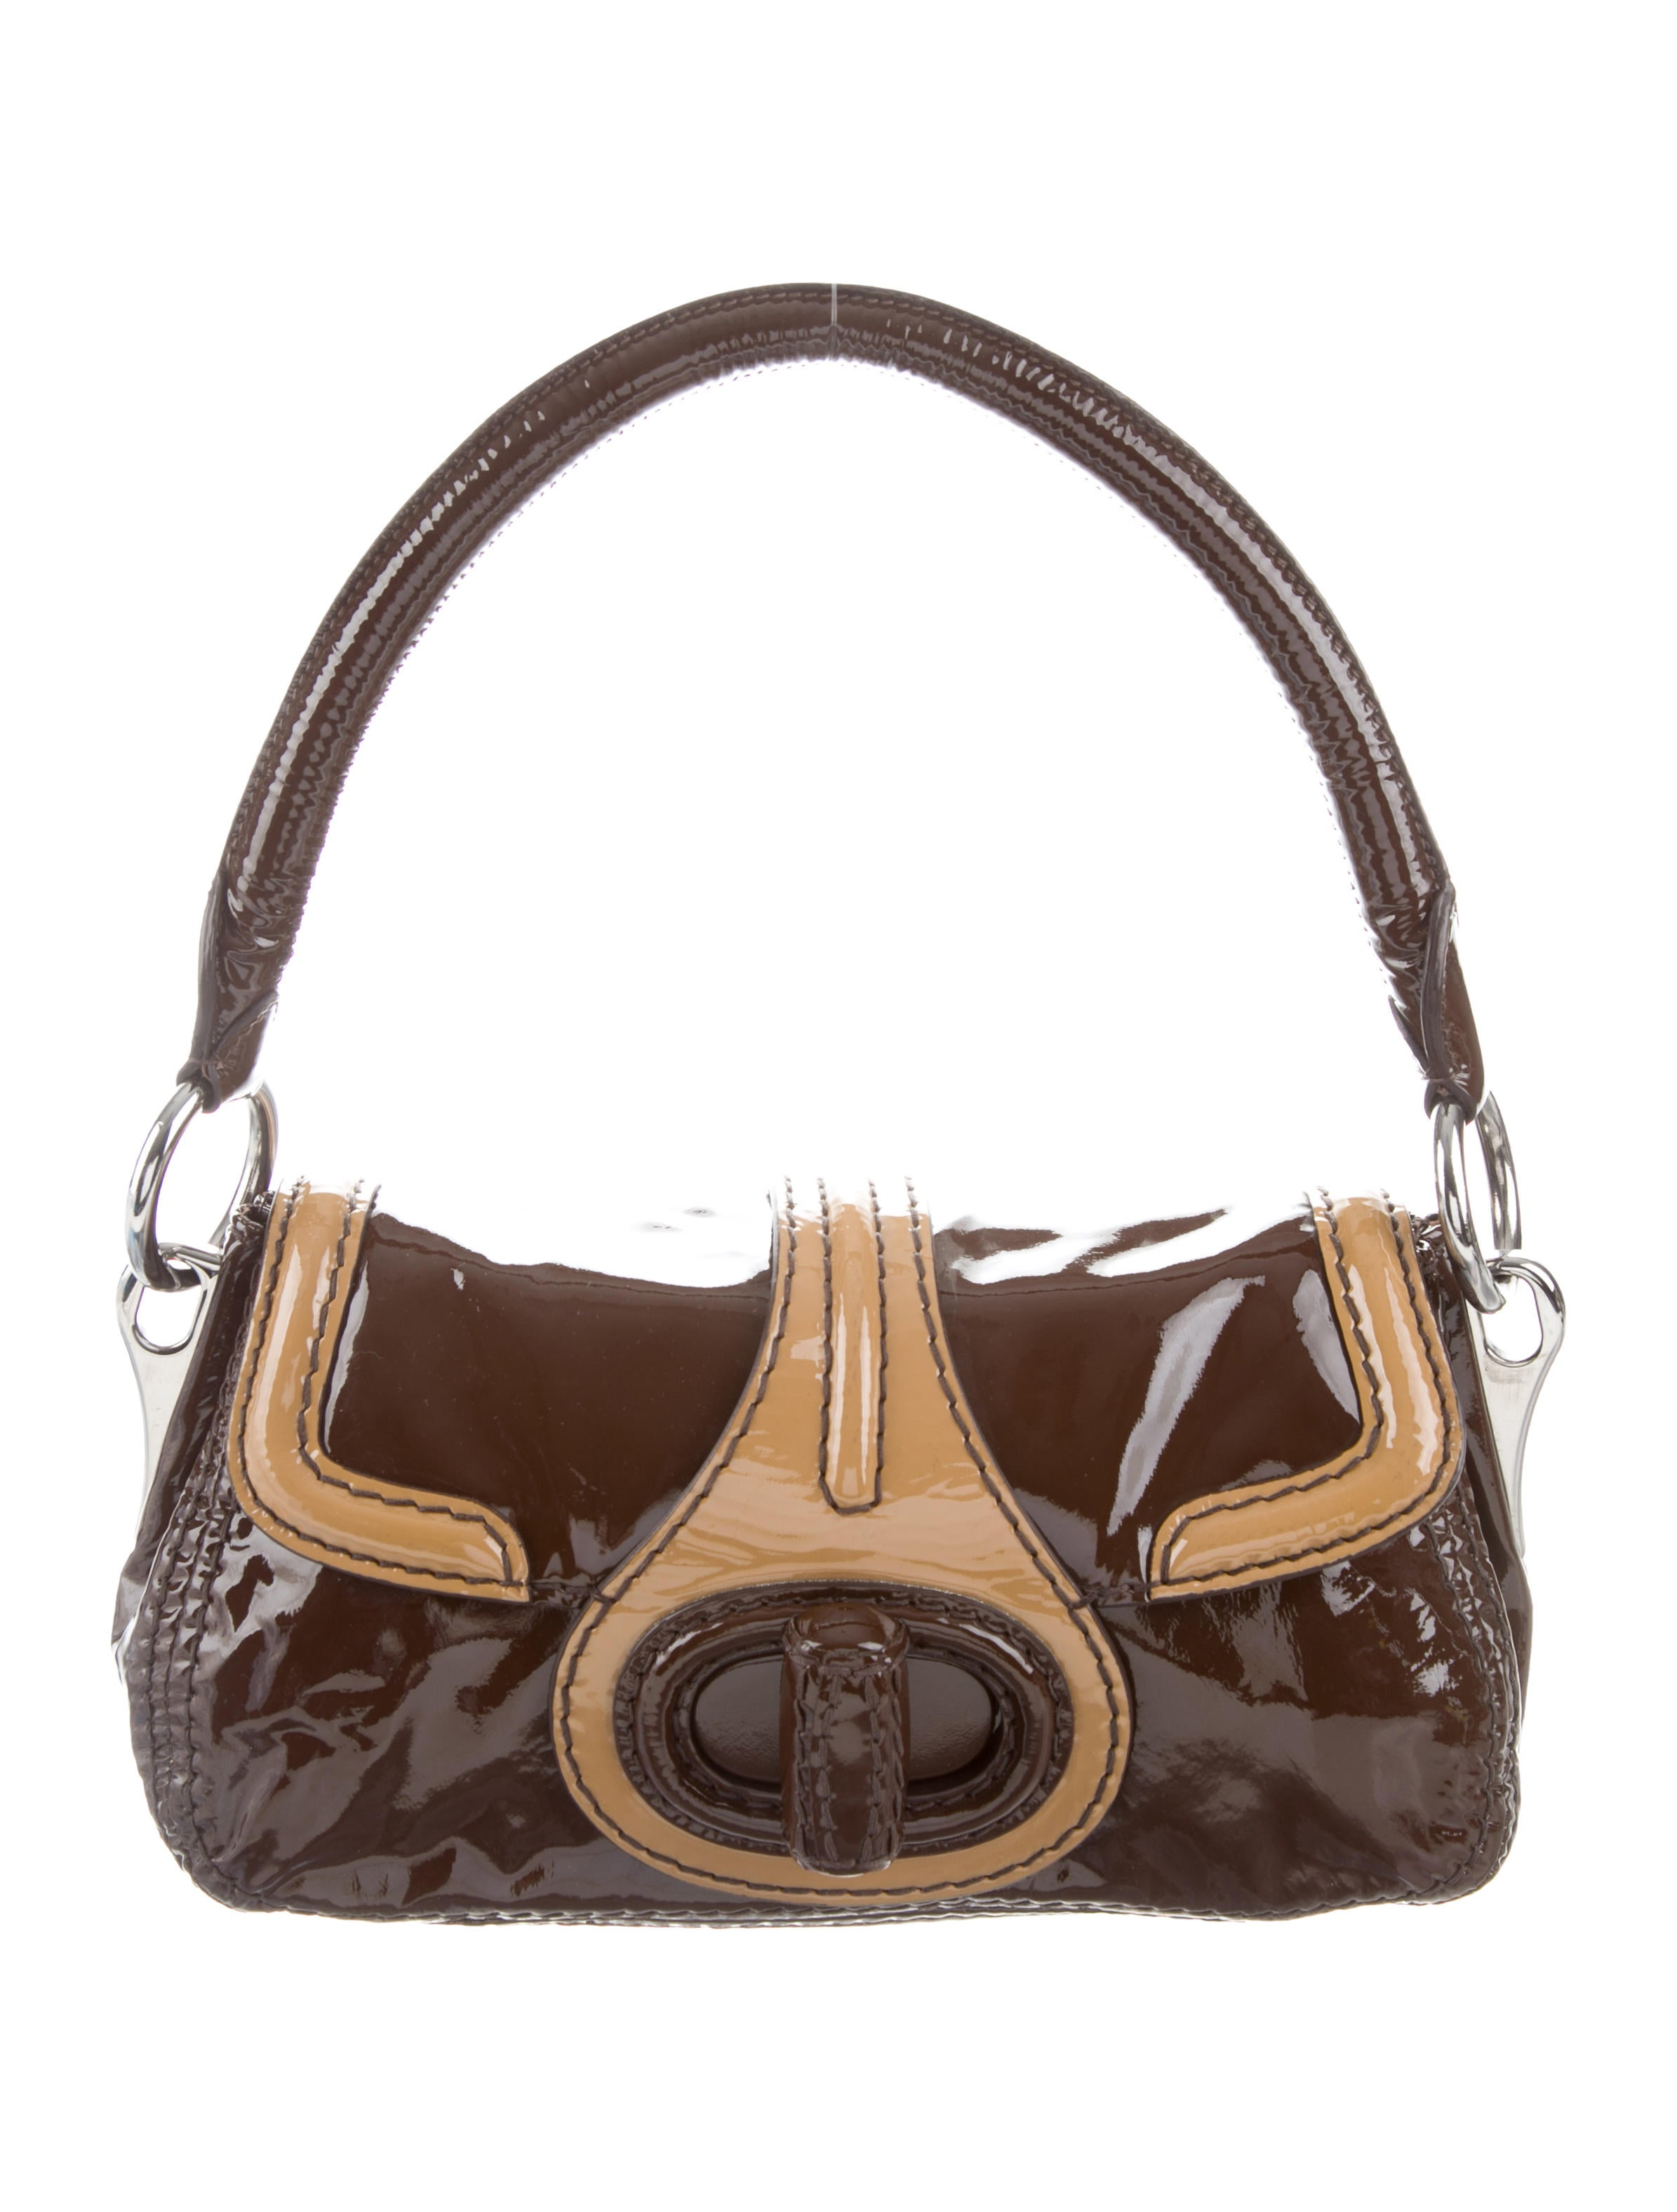 Patent Leather Shoulder Bag by Prada